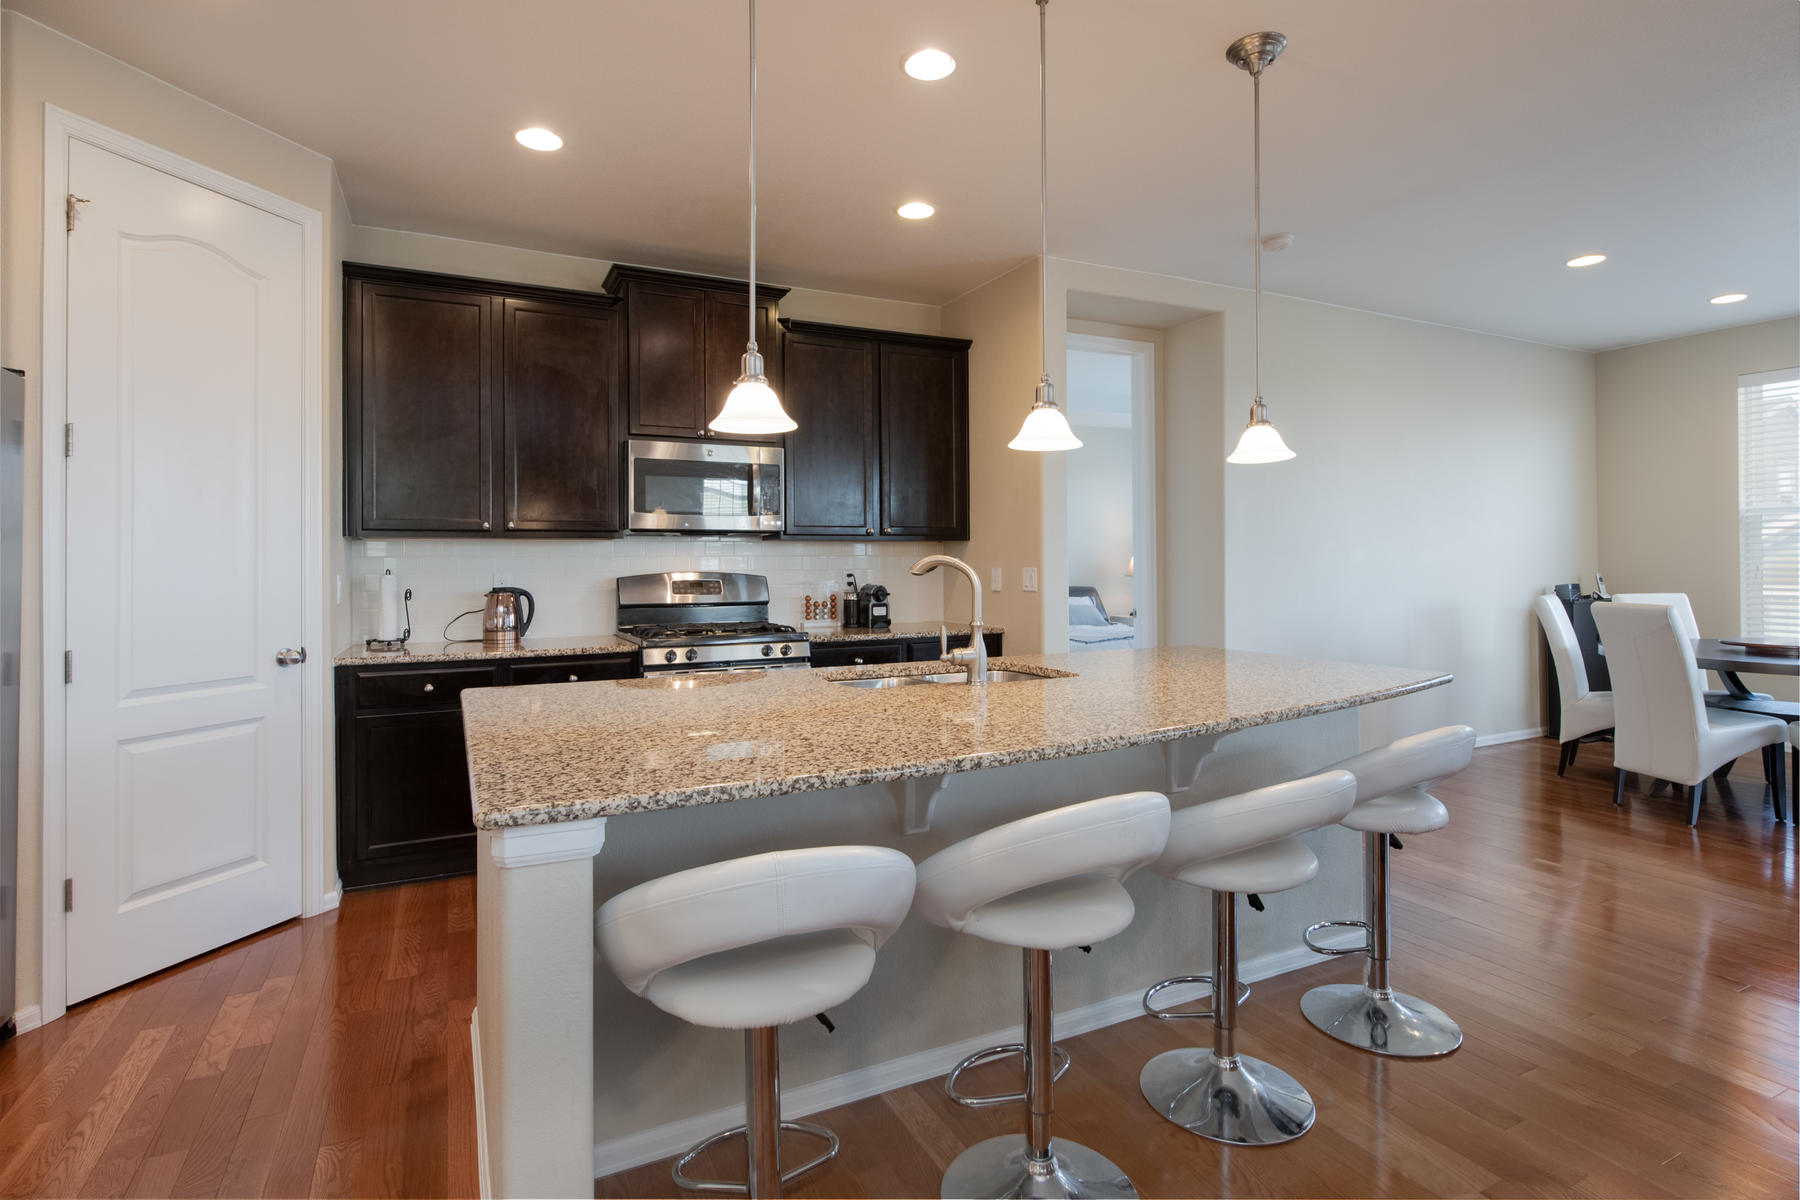 """Additional photo for property listing at This charming home features a dream kitchen with 42"""" birch cabinetry 19721 W 59th Ave Golden, Colorado 80403 United States"""